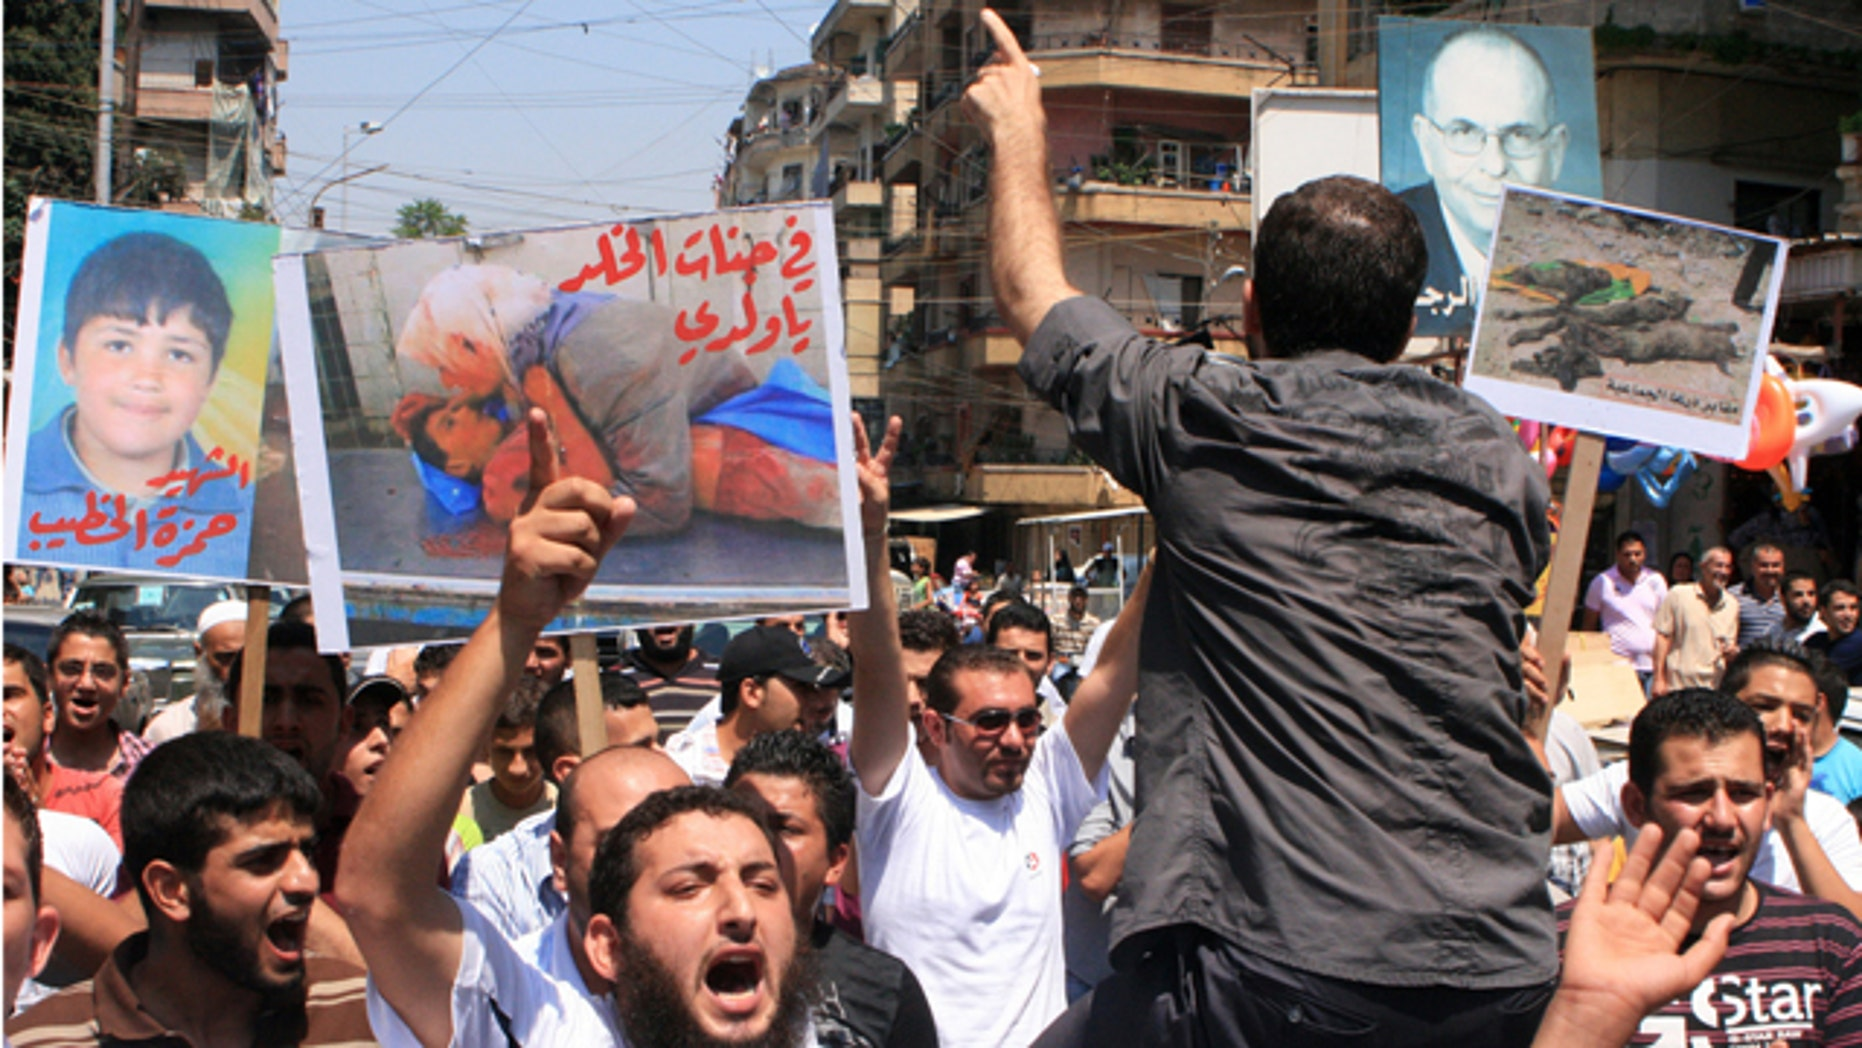 "July 15: Lebanese protesters shout slogans as they carry banners in Arabic that read:"" you are in heaven my son,"" center, ""the martyr Hamza el-Khatib,"" left, and ""Daraa mass graves,"" right, during a rally in solidarity with Syrian anti-government protesters in the northern city of Tripoli, Lebanon. Syrian security forces fired on protesters in the capital and other major cities Friday, killing at least 14 people as hundreds of thousands gathered for some of the largest anti-government rallies since the uprising began in March, witnesses and activists said."